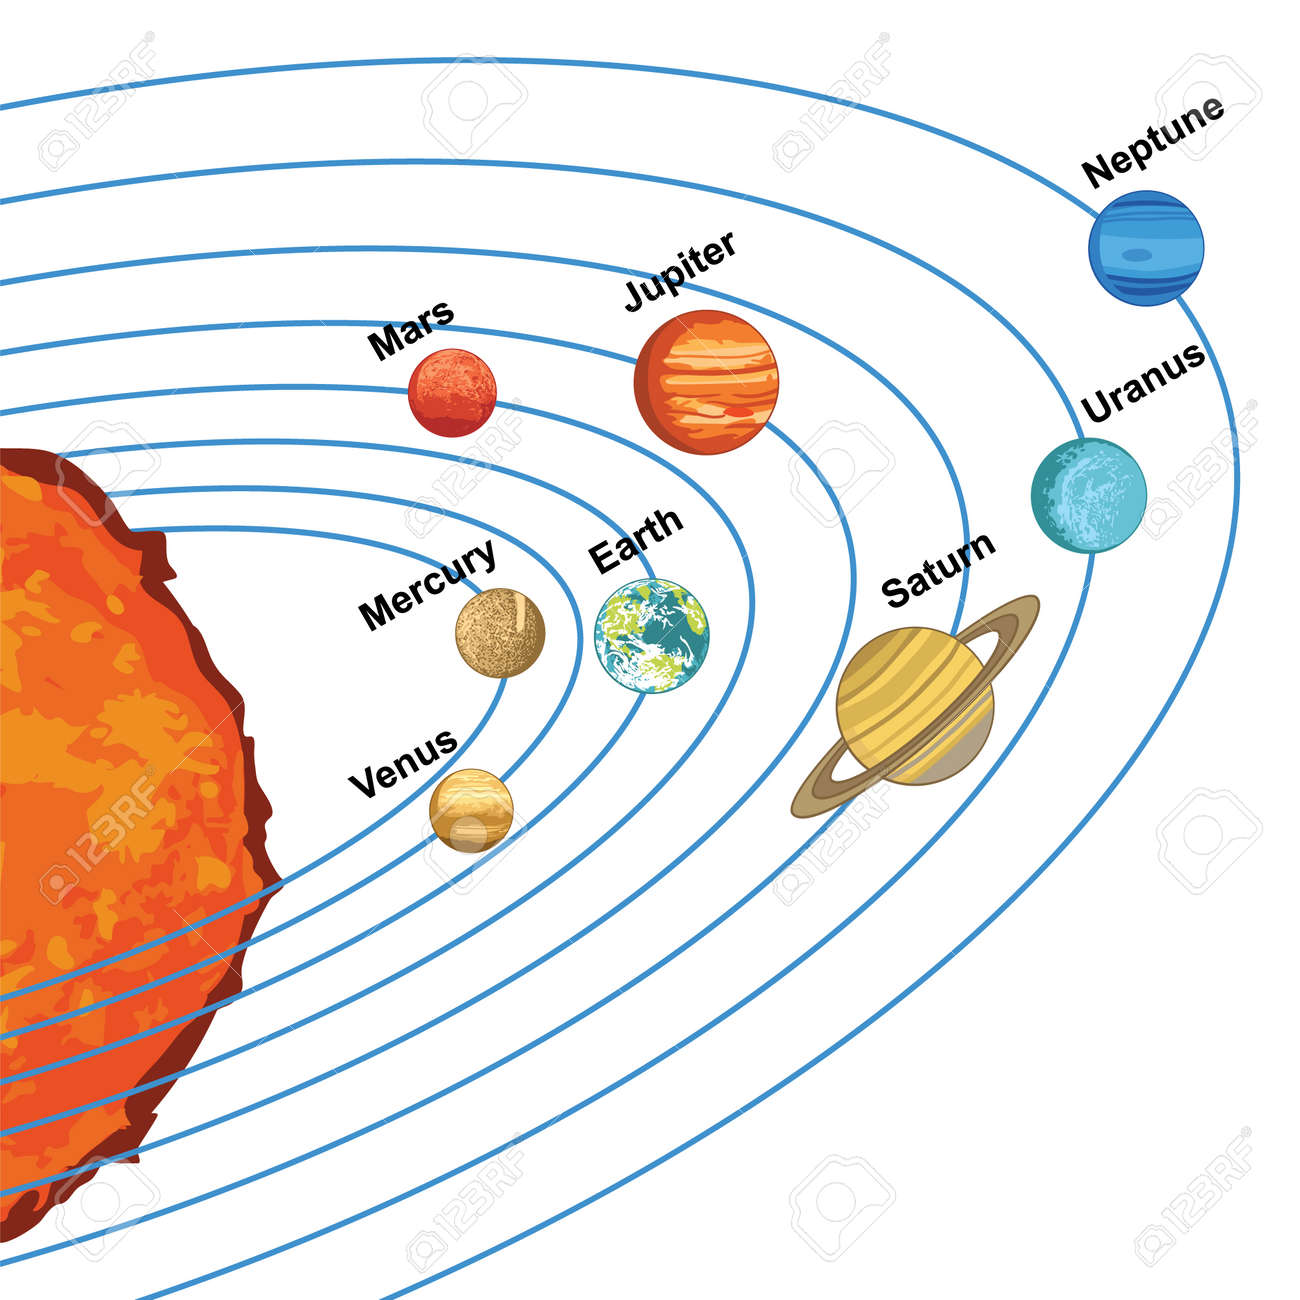 illustration of solar system showing planets around sun - 36422321